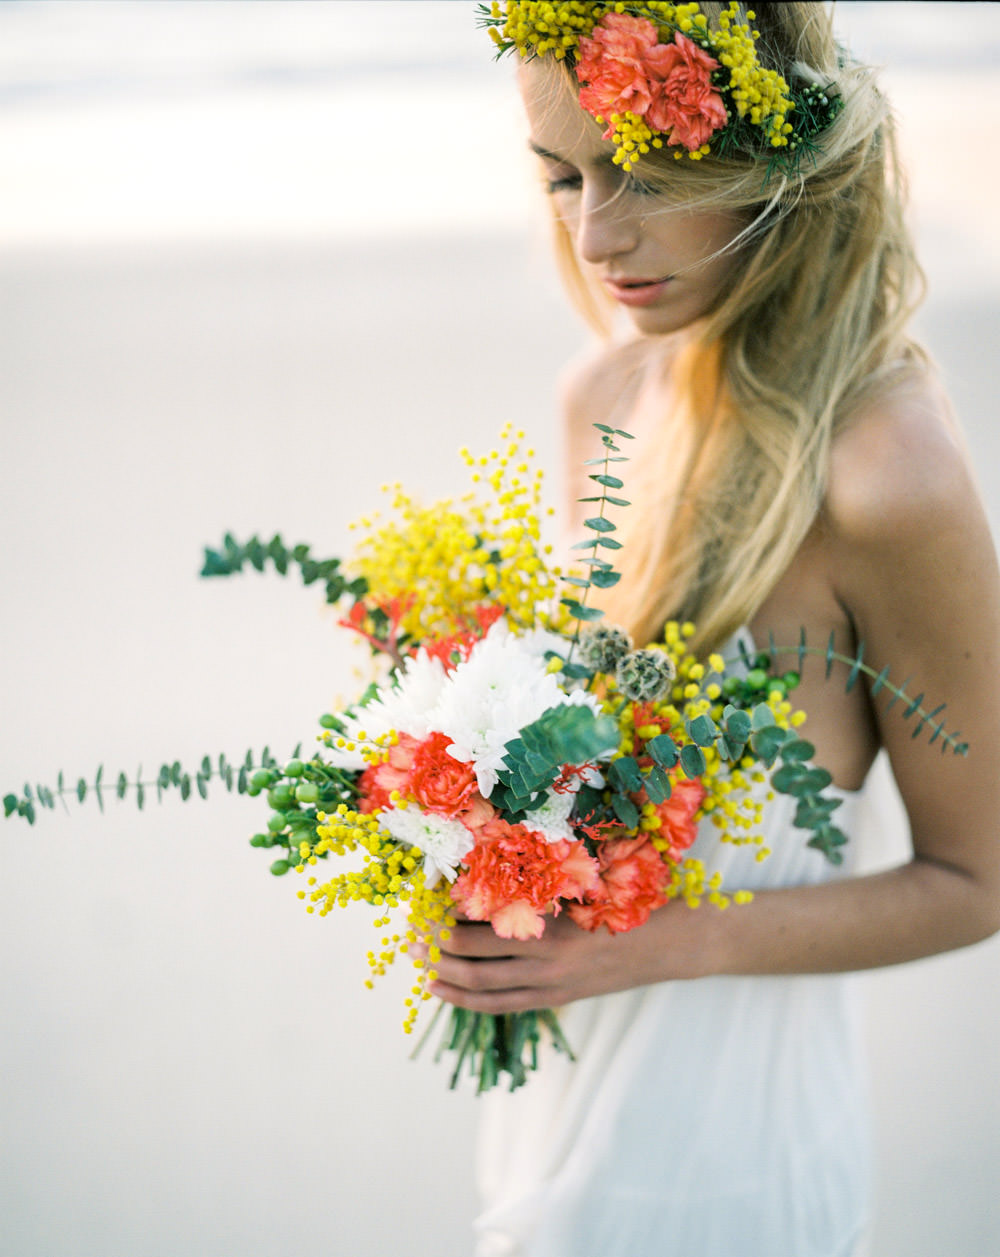 88bd4b7598 Dreamy Bohemian Beach Wedding Inspiration Shoot In Porto Portugal With  Styling By Best Day Ever And Images From Marcos Sanchez